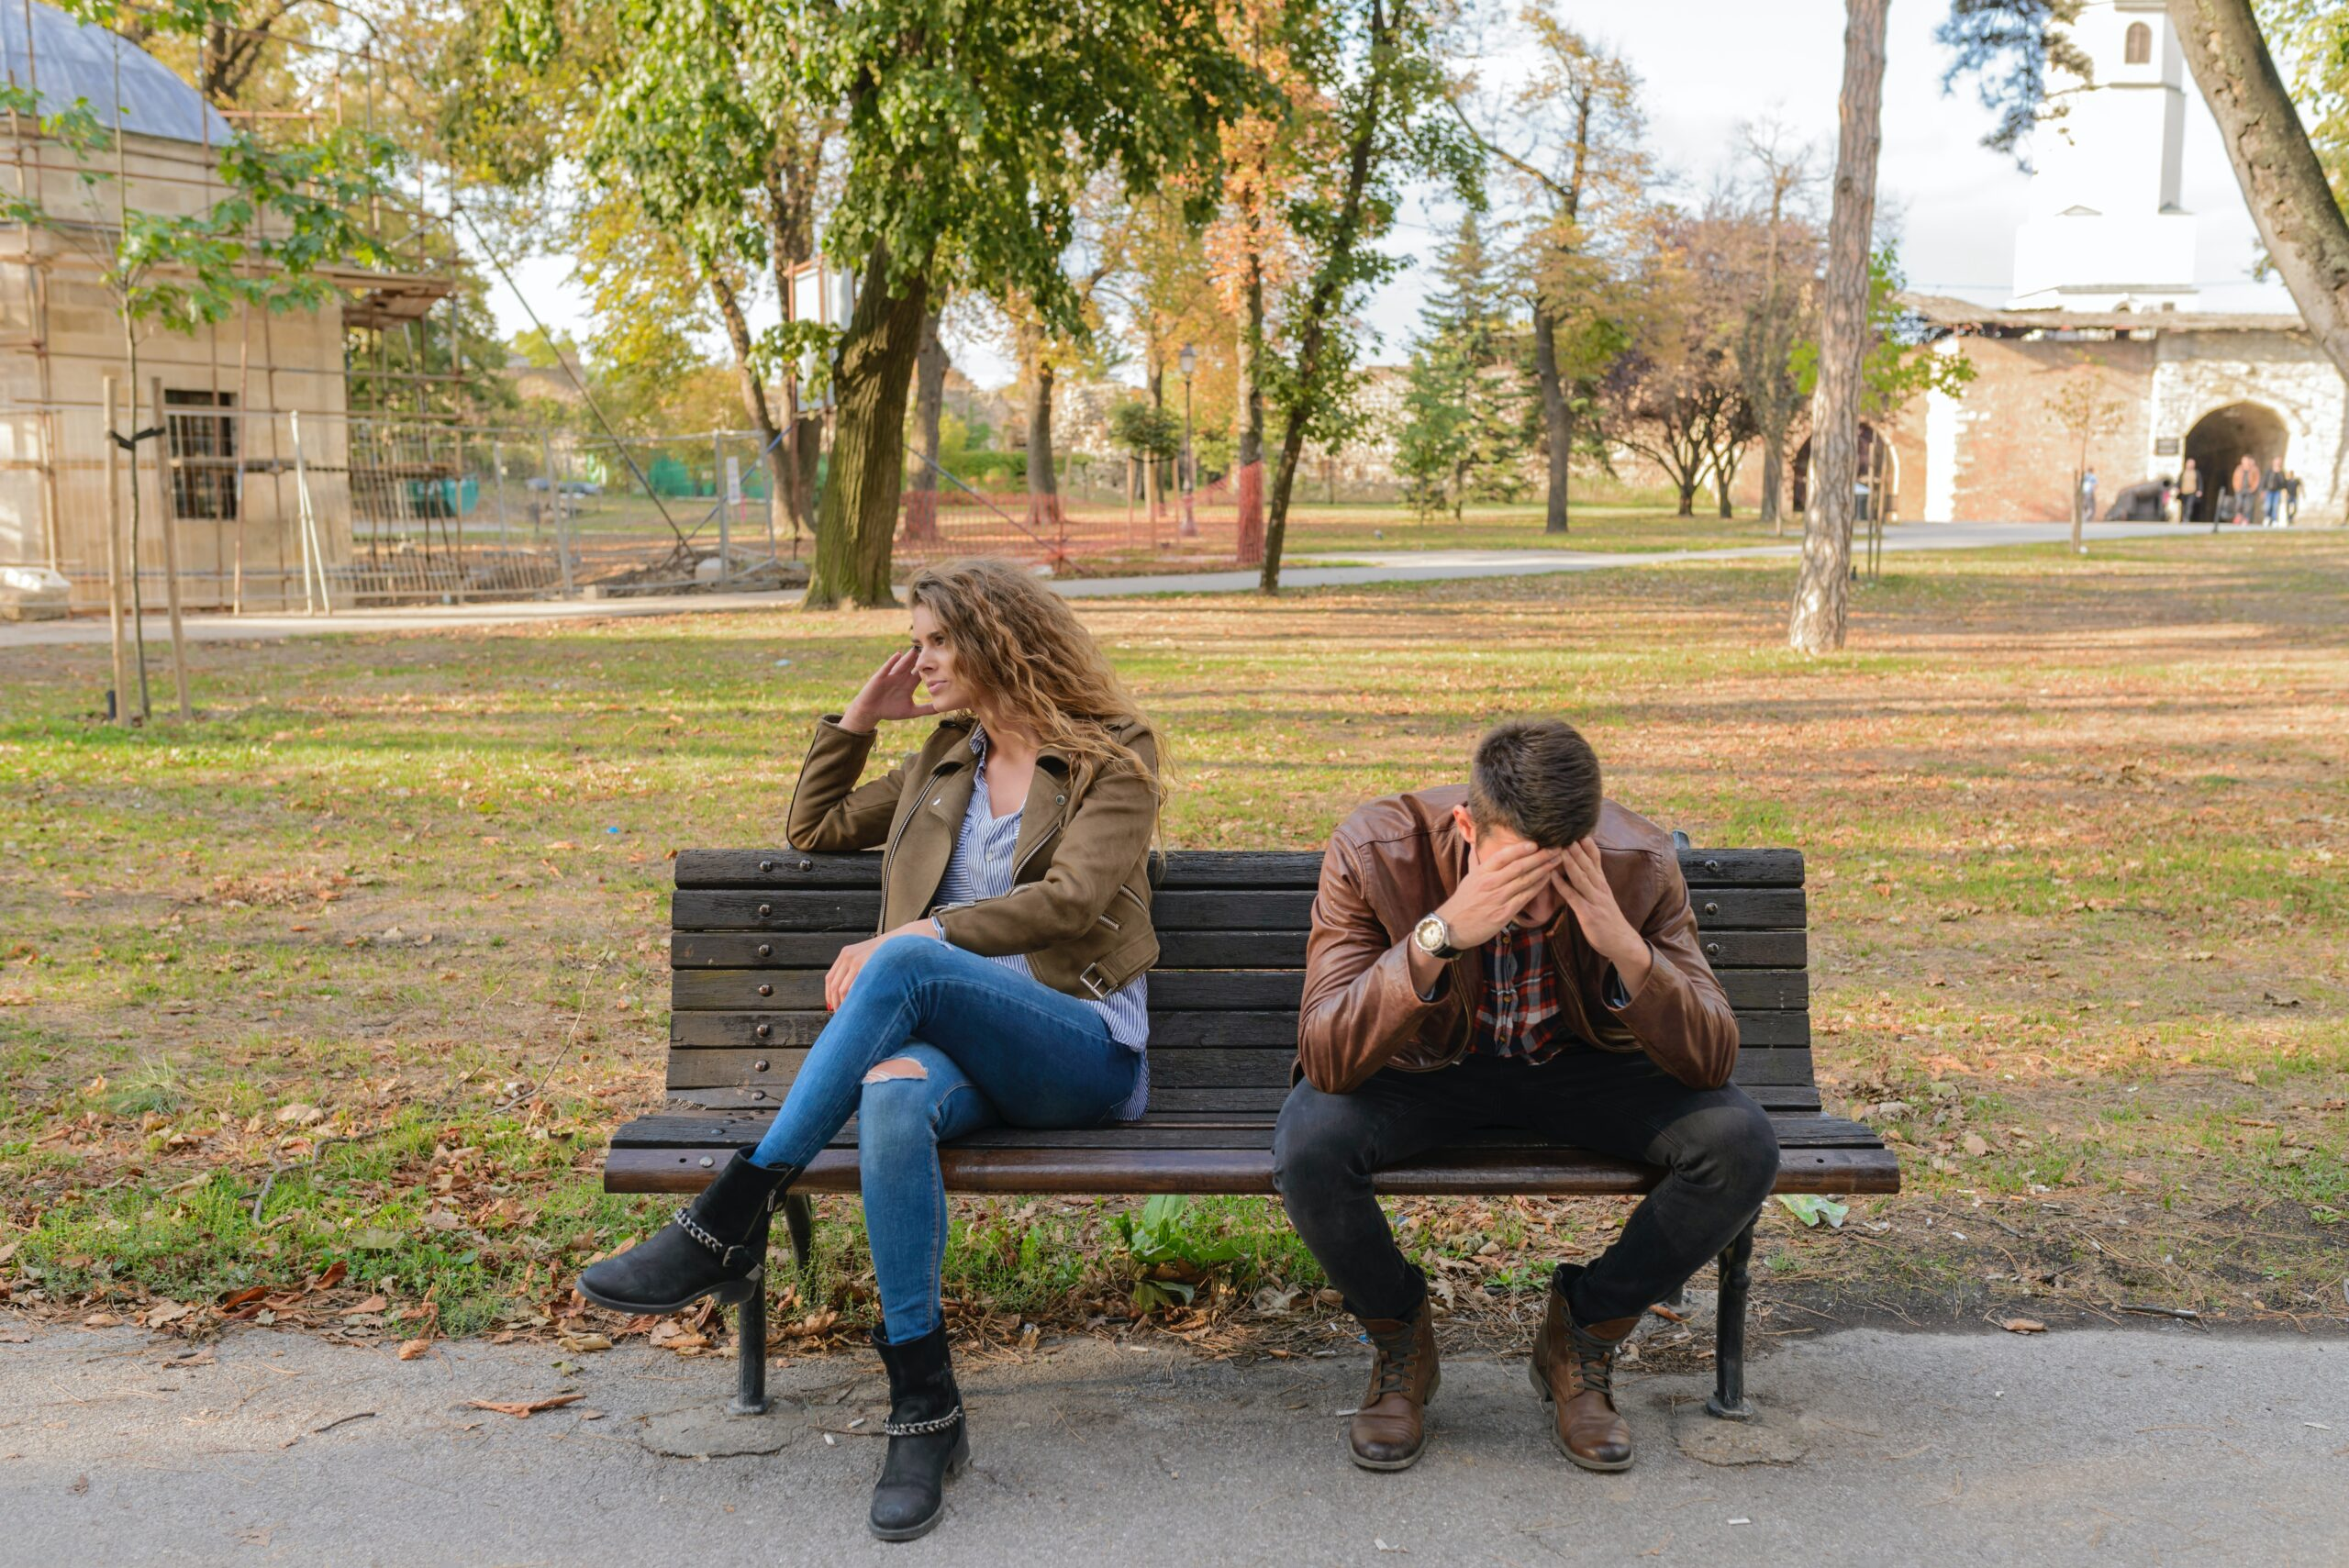 Woman and man sat apart on a bench, suggesting a falling out